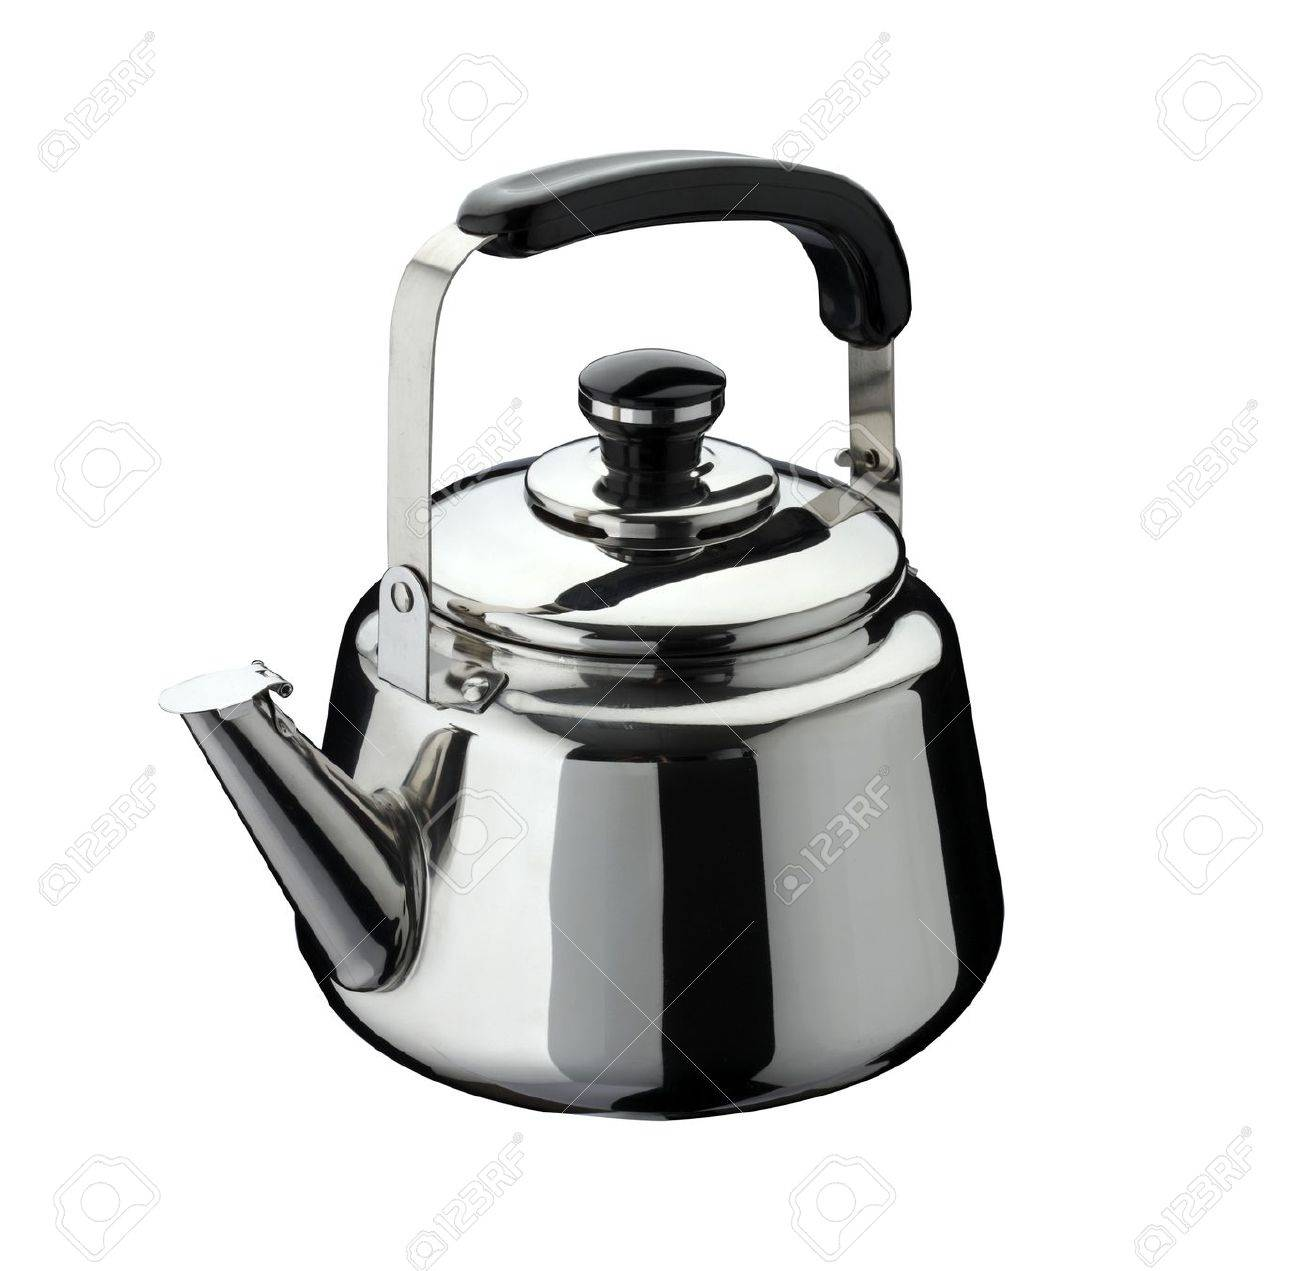 kitchen tools: kettle on stainless steel, isolated on white background Stock Photo - 12274423